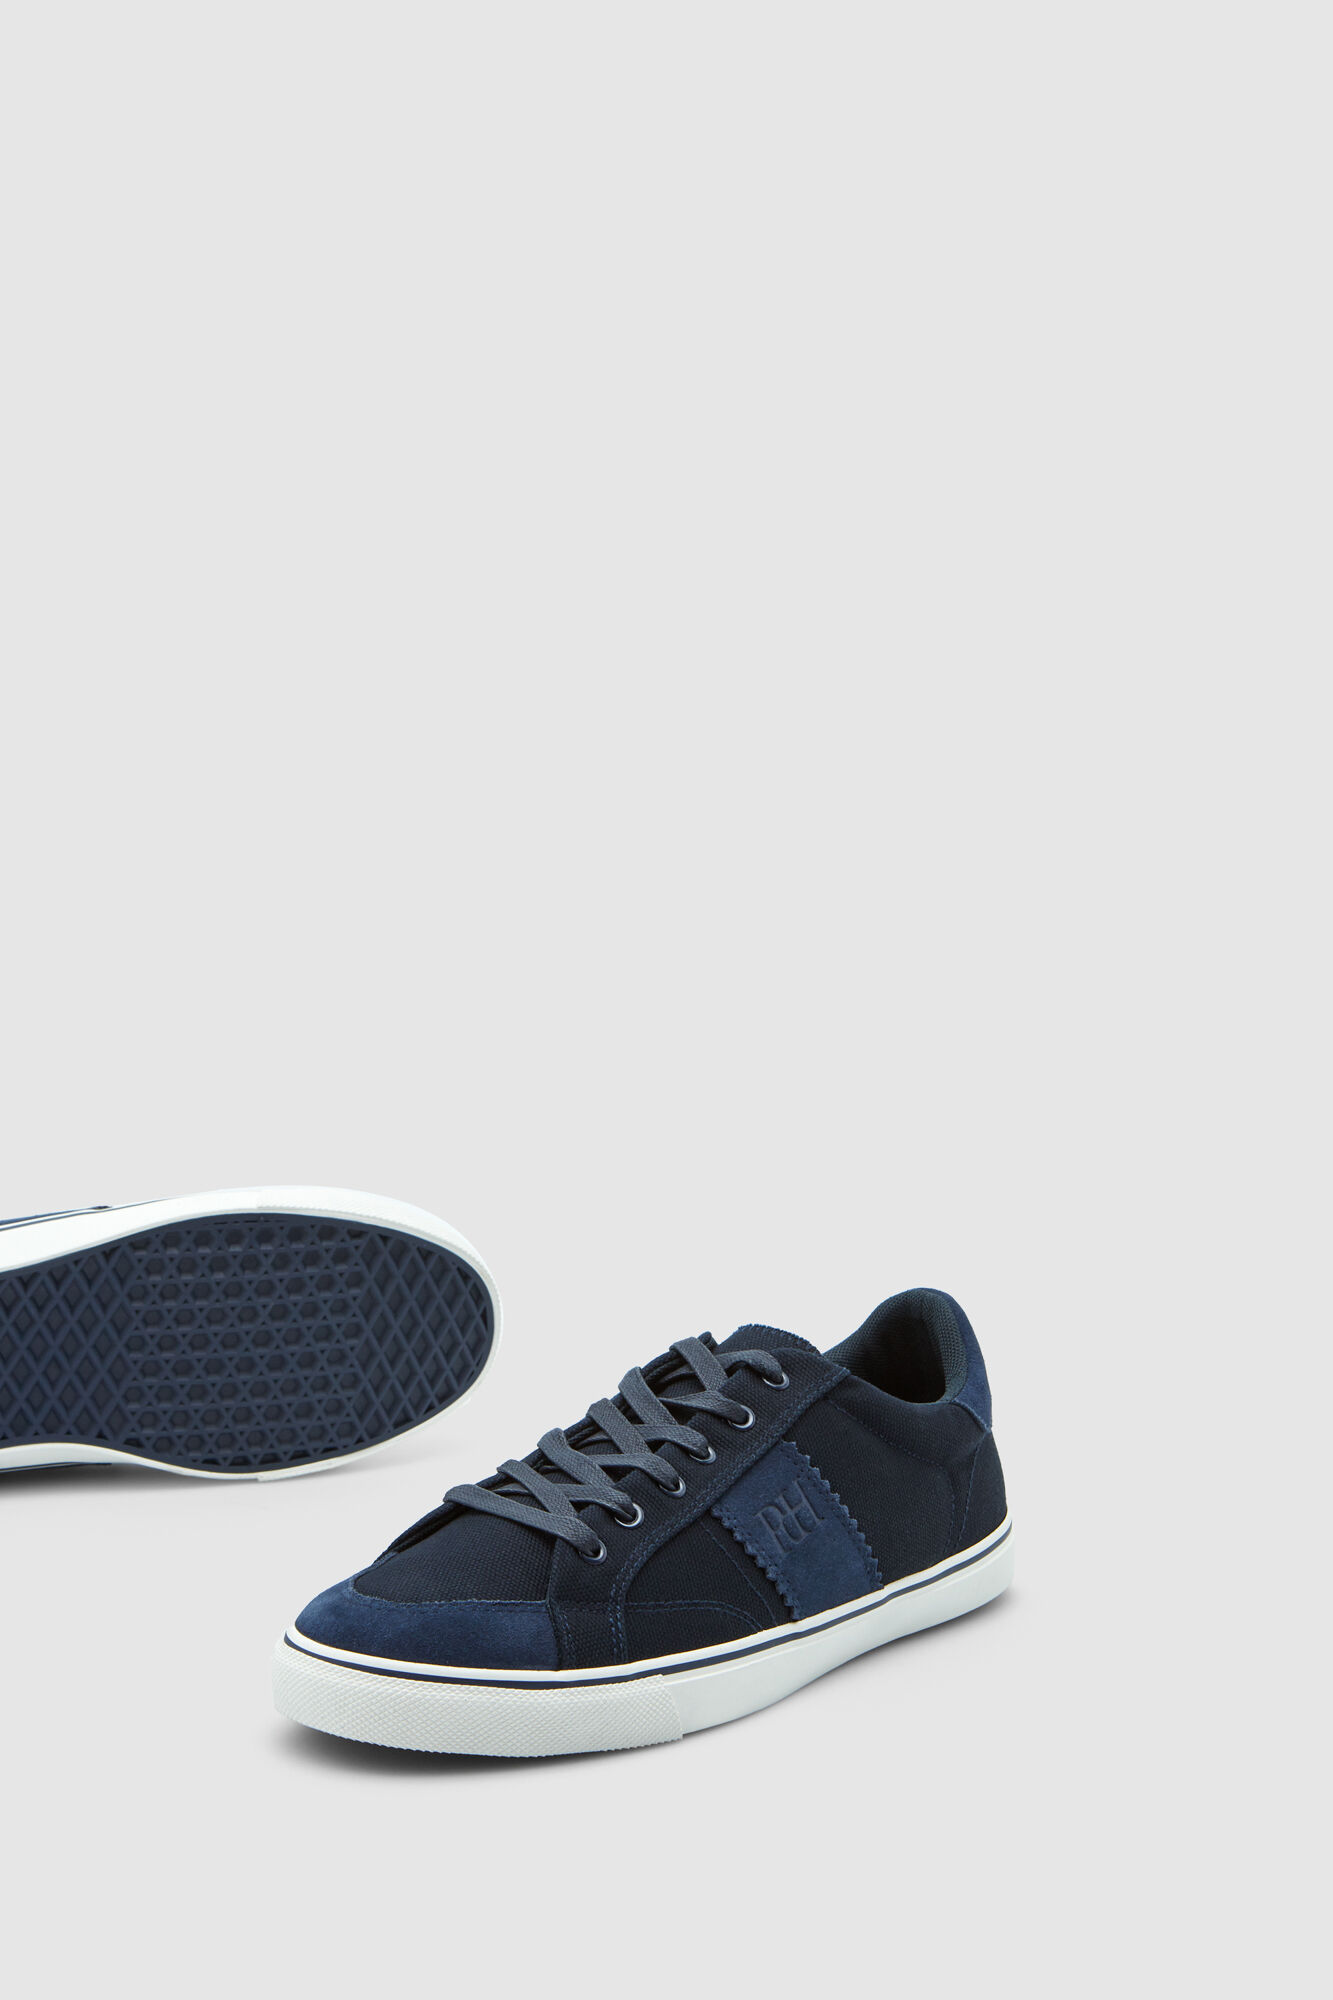 3ba93c7595be Pedro del Hierro Canvas and leather sneakers Blue